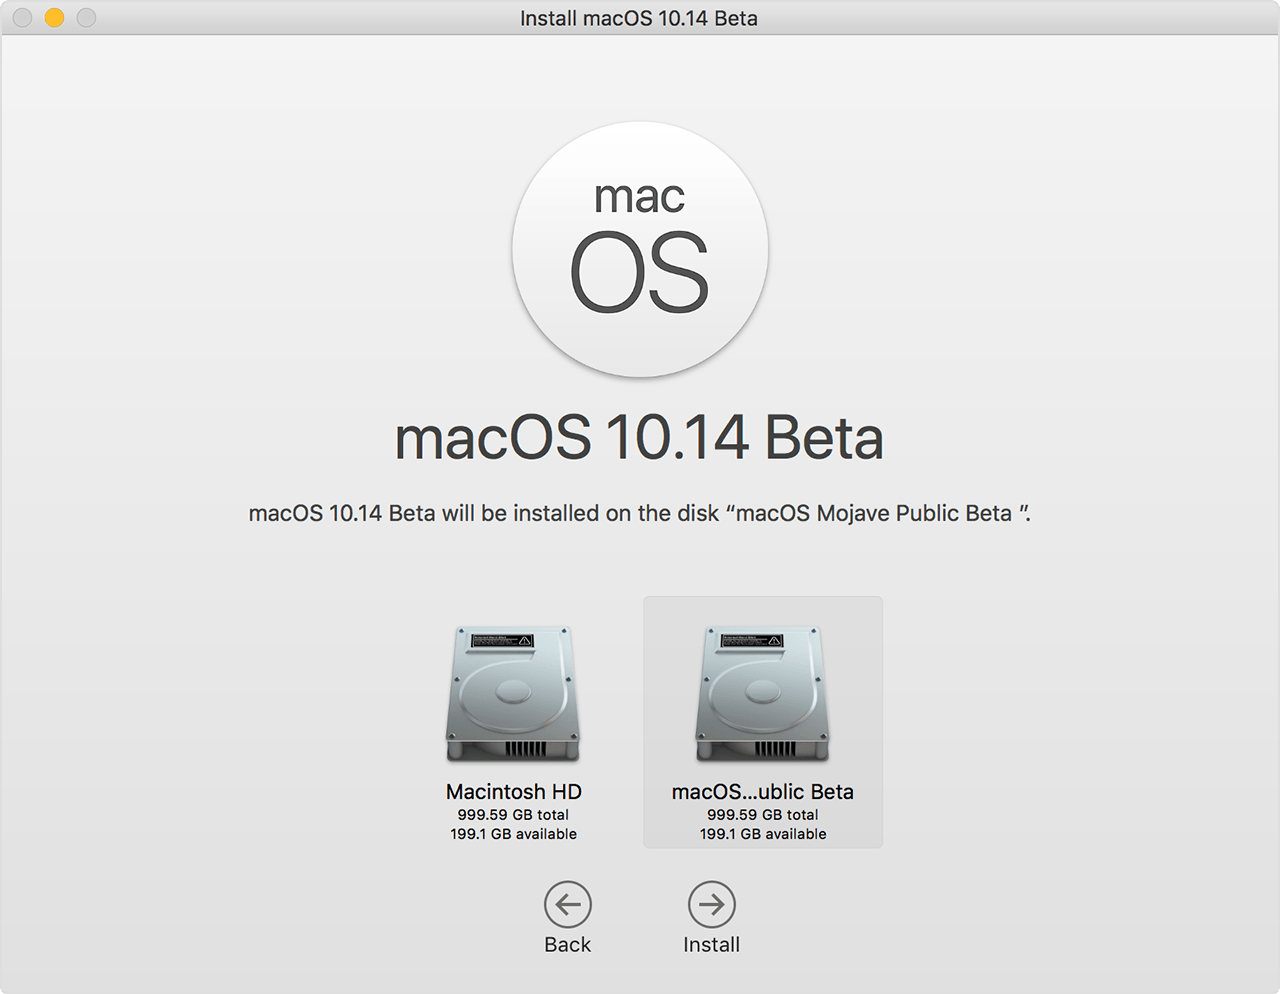 macOS installer screen, showing the second volume selected